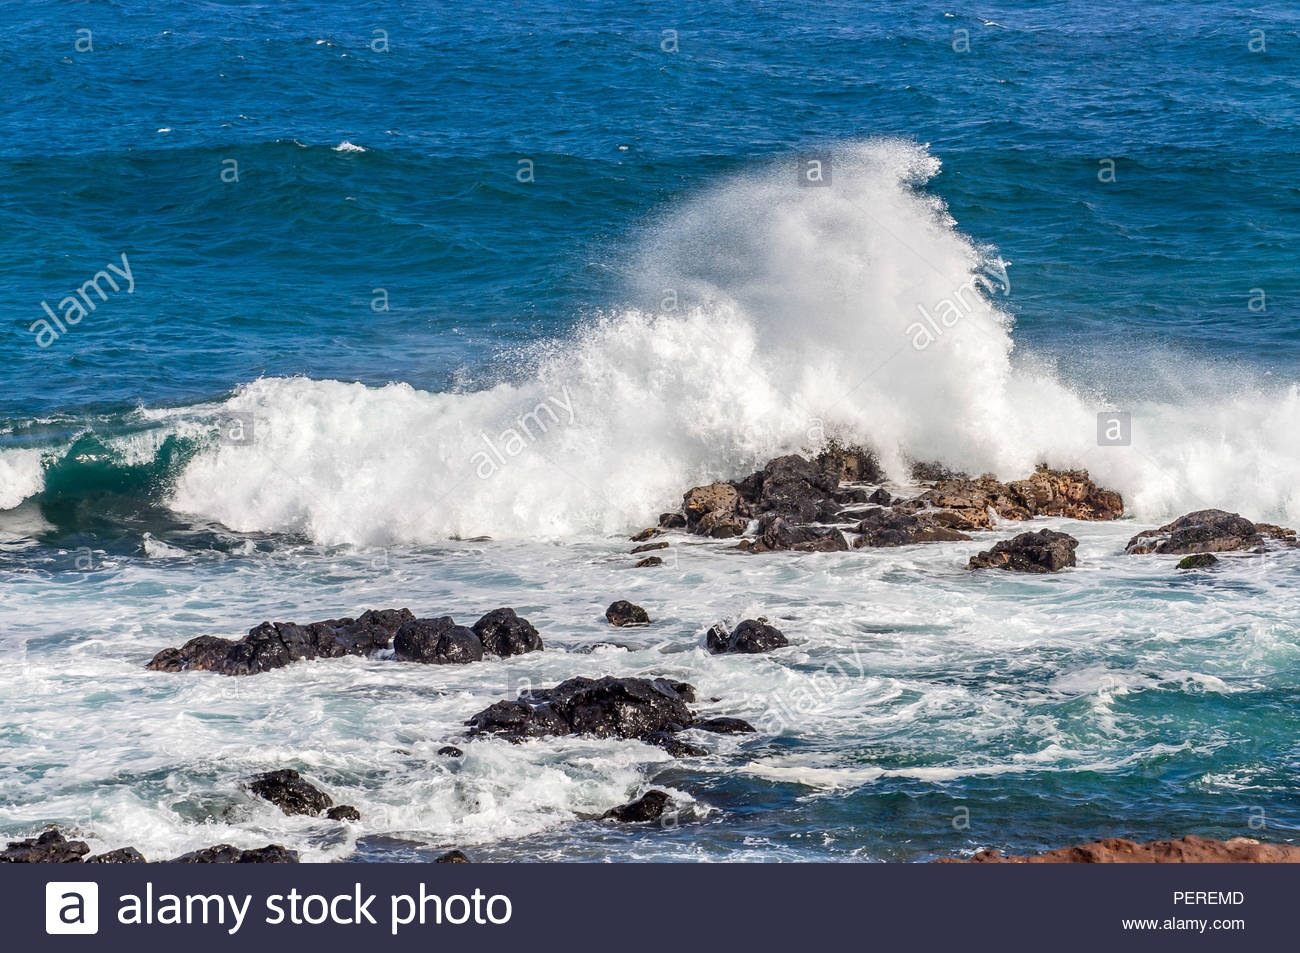 Swells of Surf Crash On To Massive Black Volcanic Rock on the Island of Maui in Hawaii - Stock Image